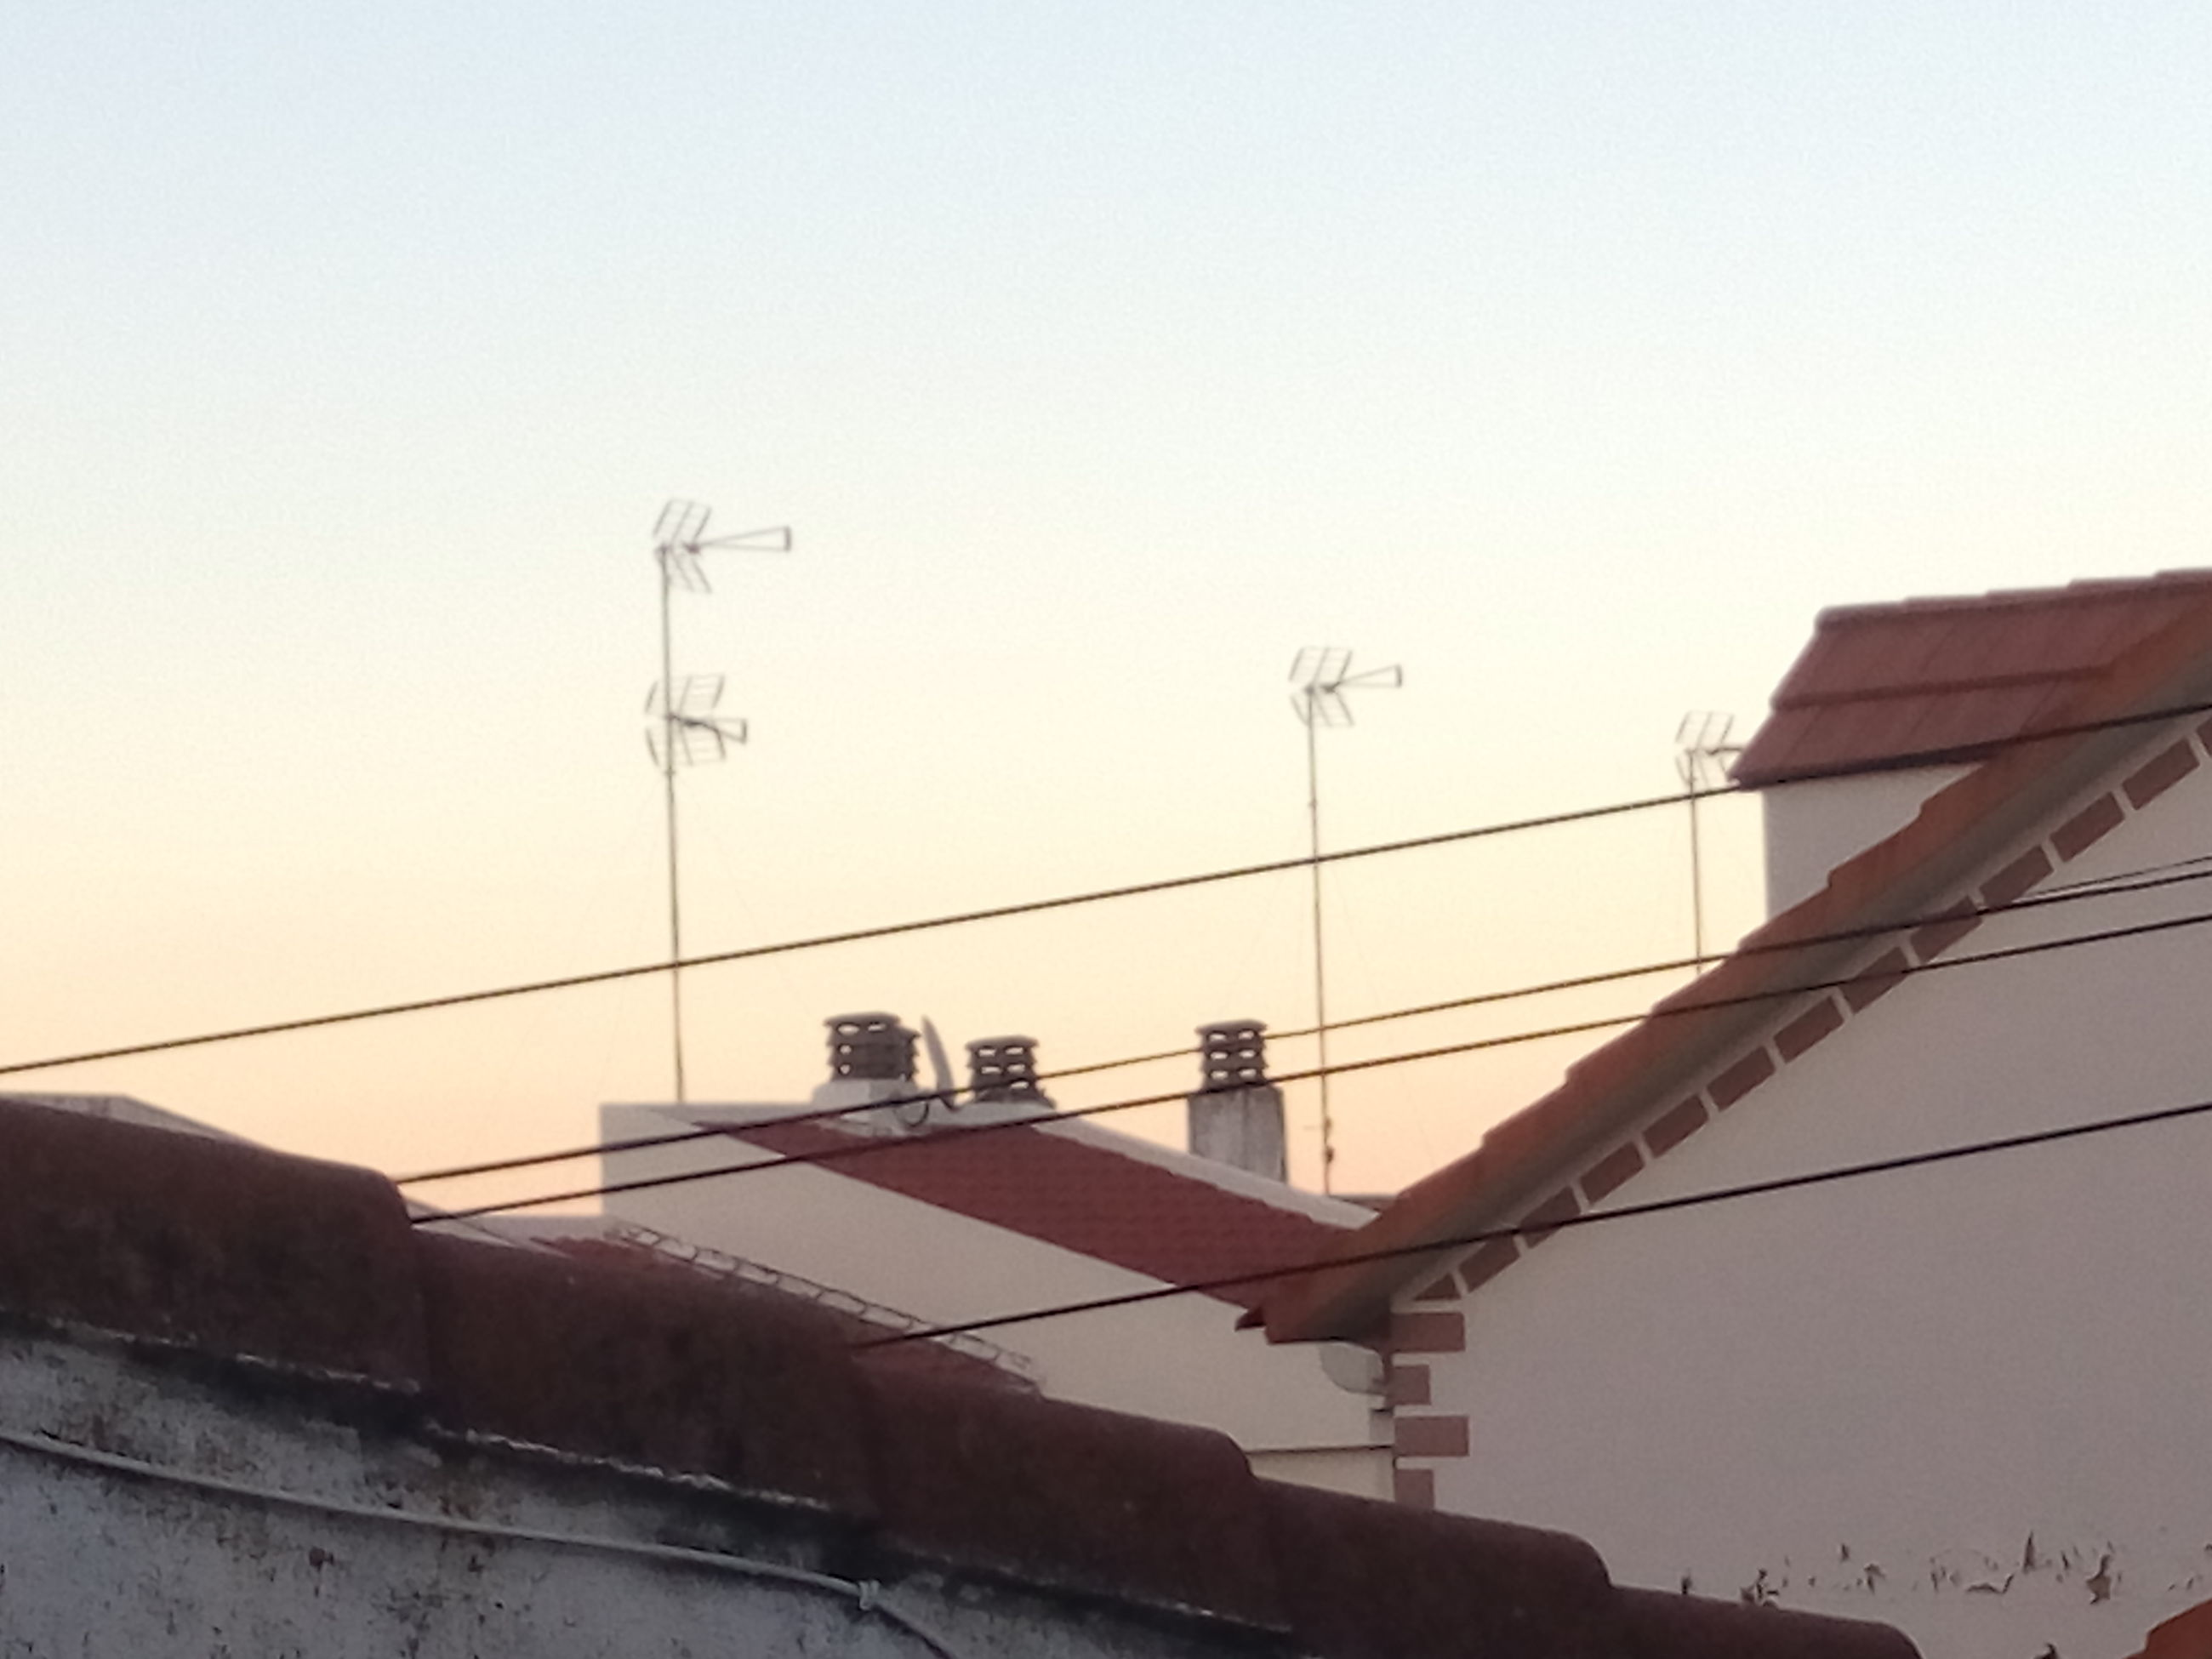 building exterior, connection, built structure, architecture, roof, clear sky, television aerial, no people, antenna - aerial, low angle view, telecommunications equipment, technology, outdoors, day, antenna, satellite dish, sunset, tiled roof, sky